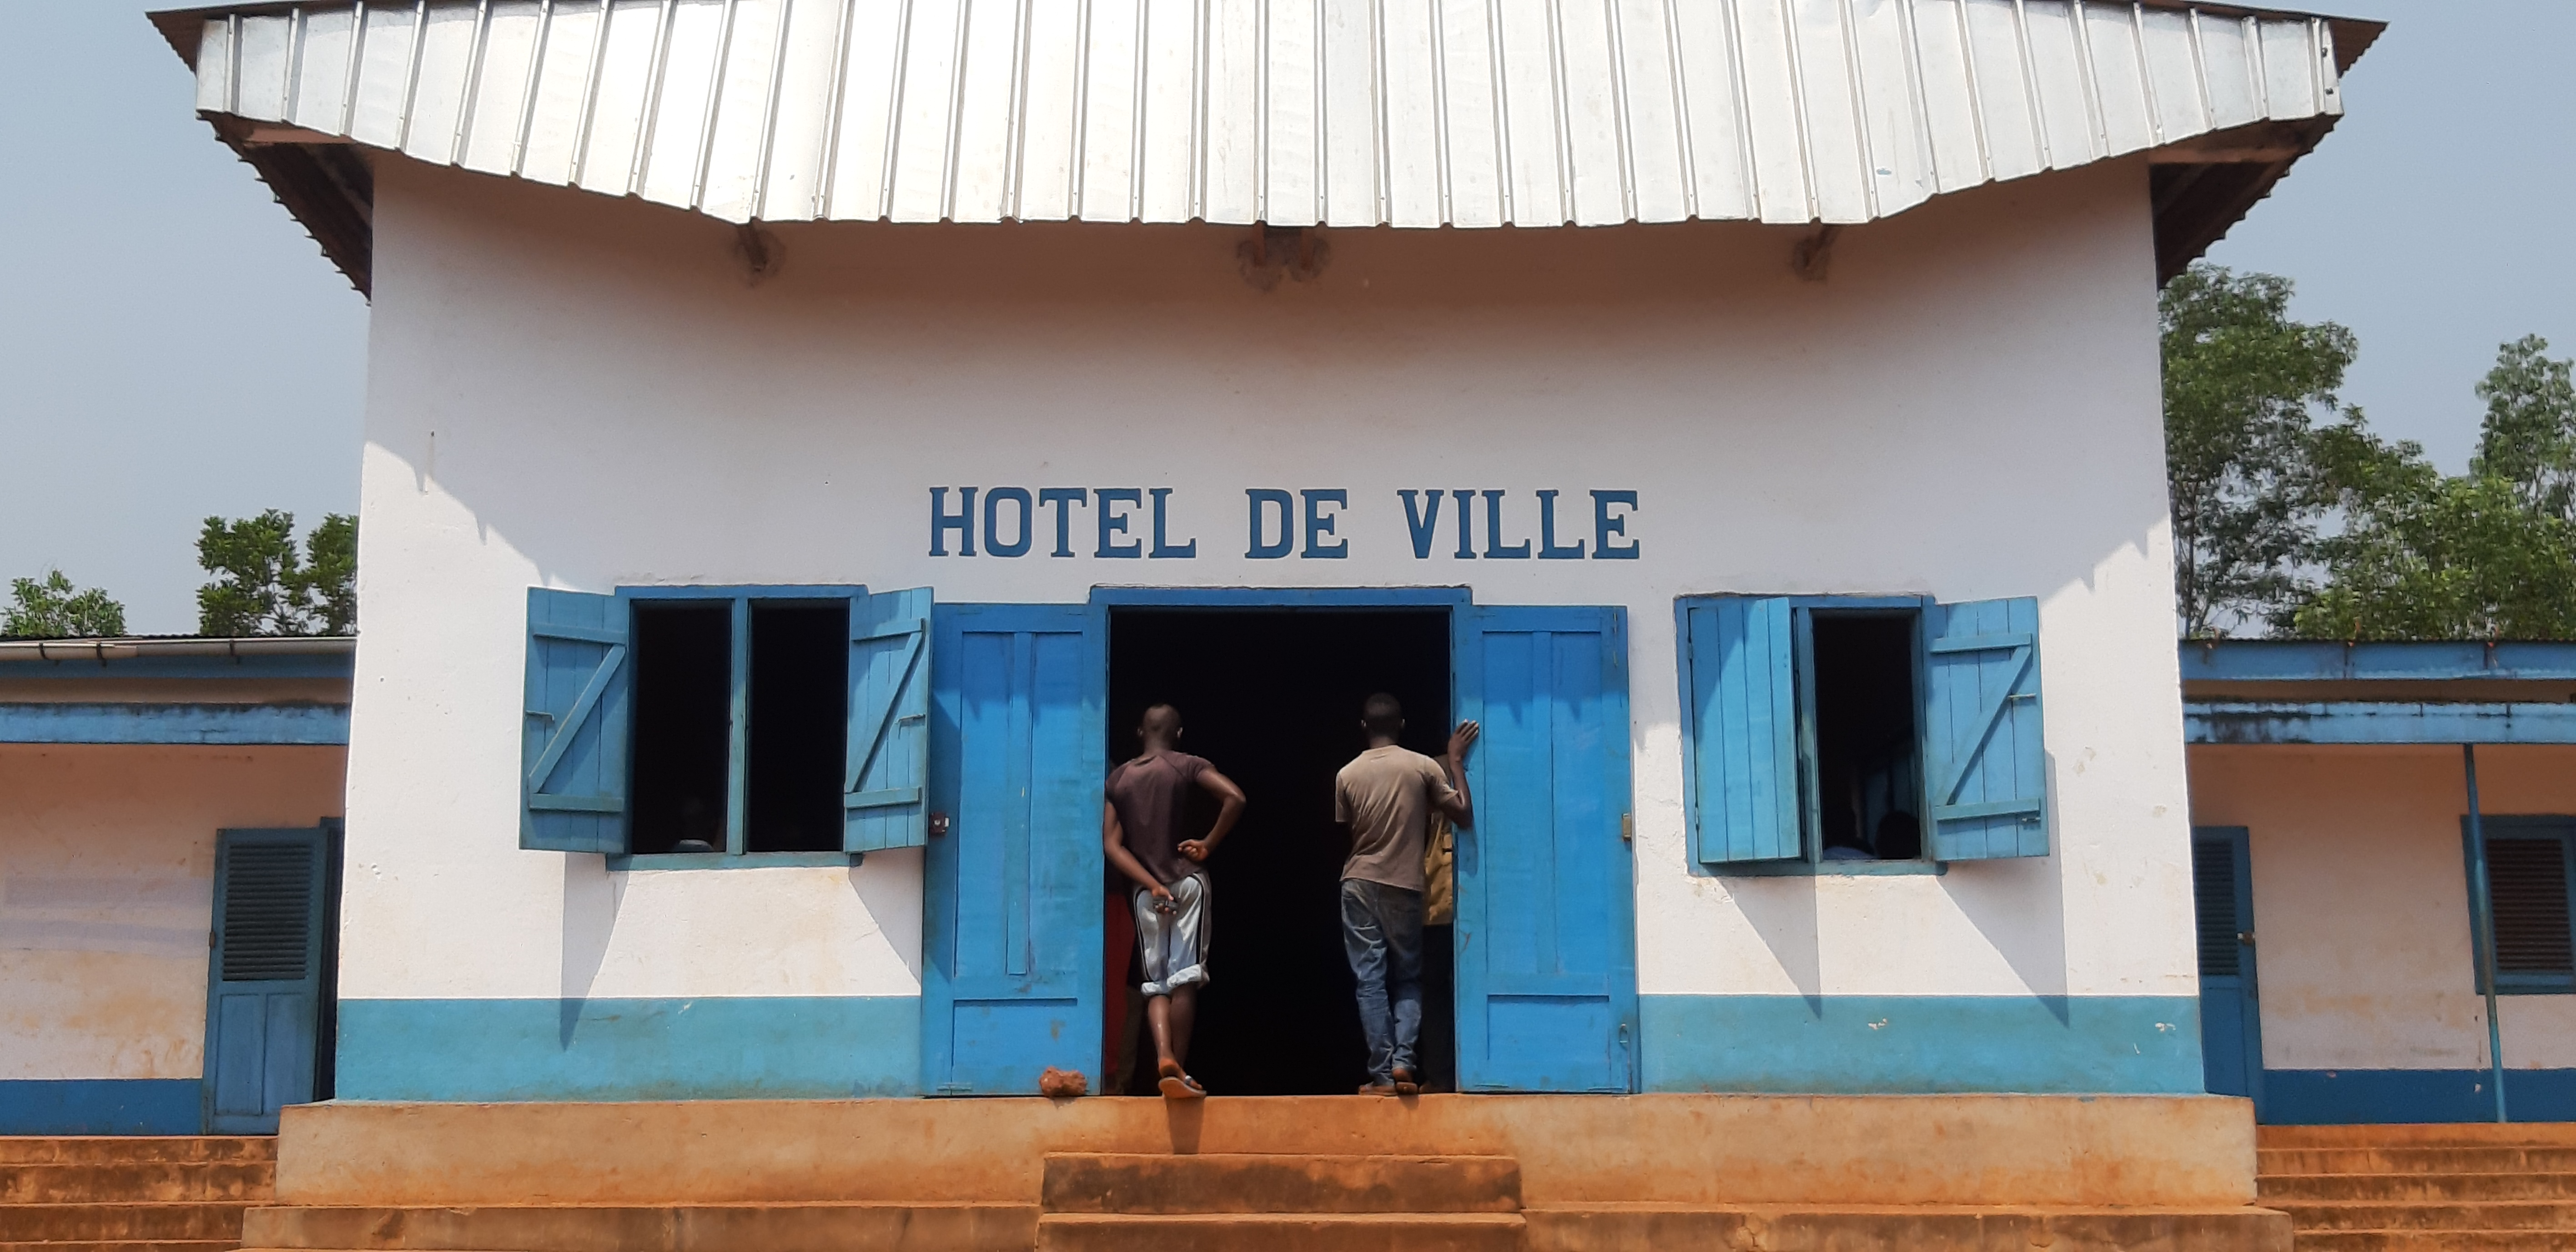 Two men stand in front of the Hotel De Ville in the Central African Republic